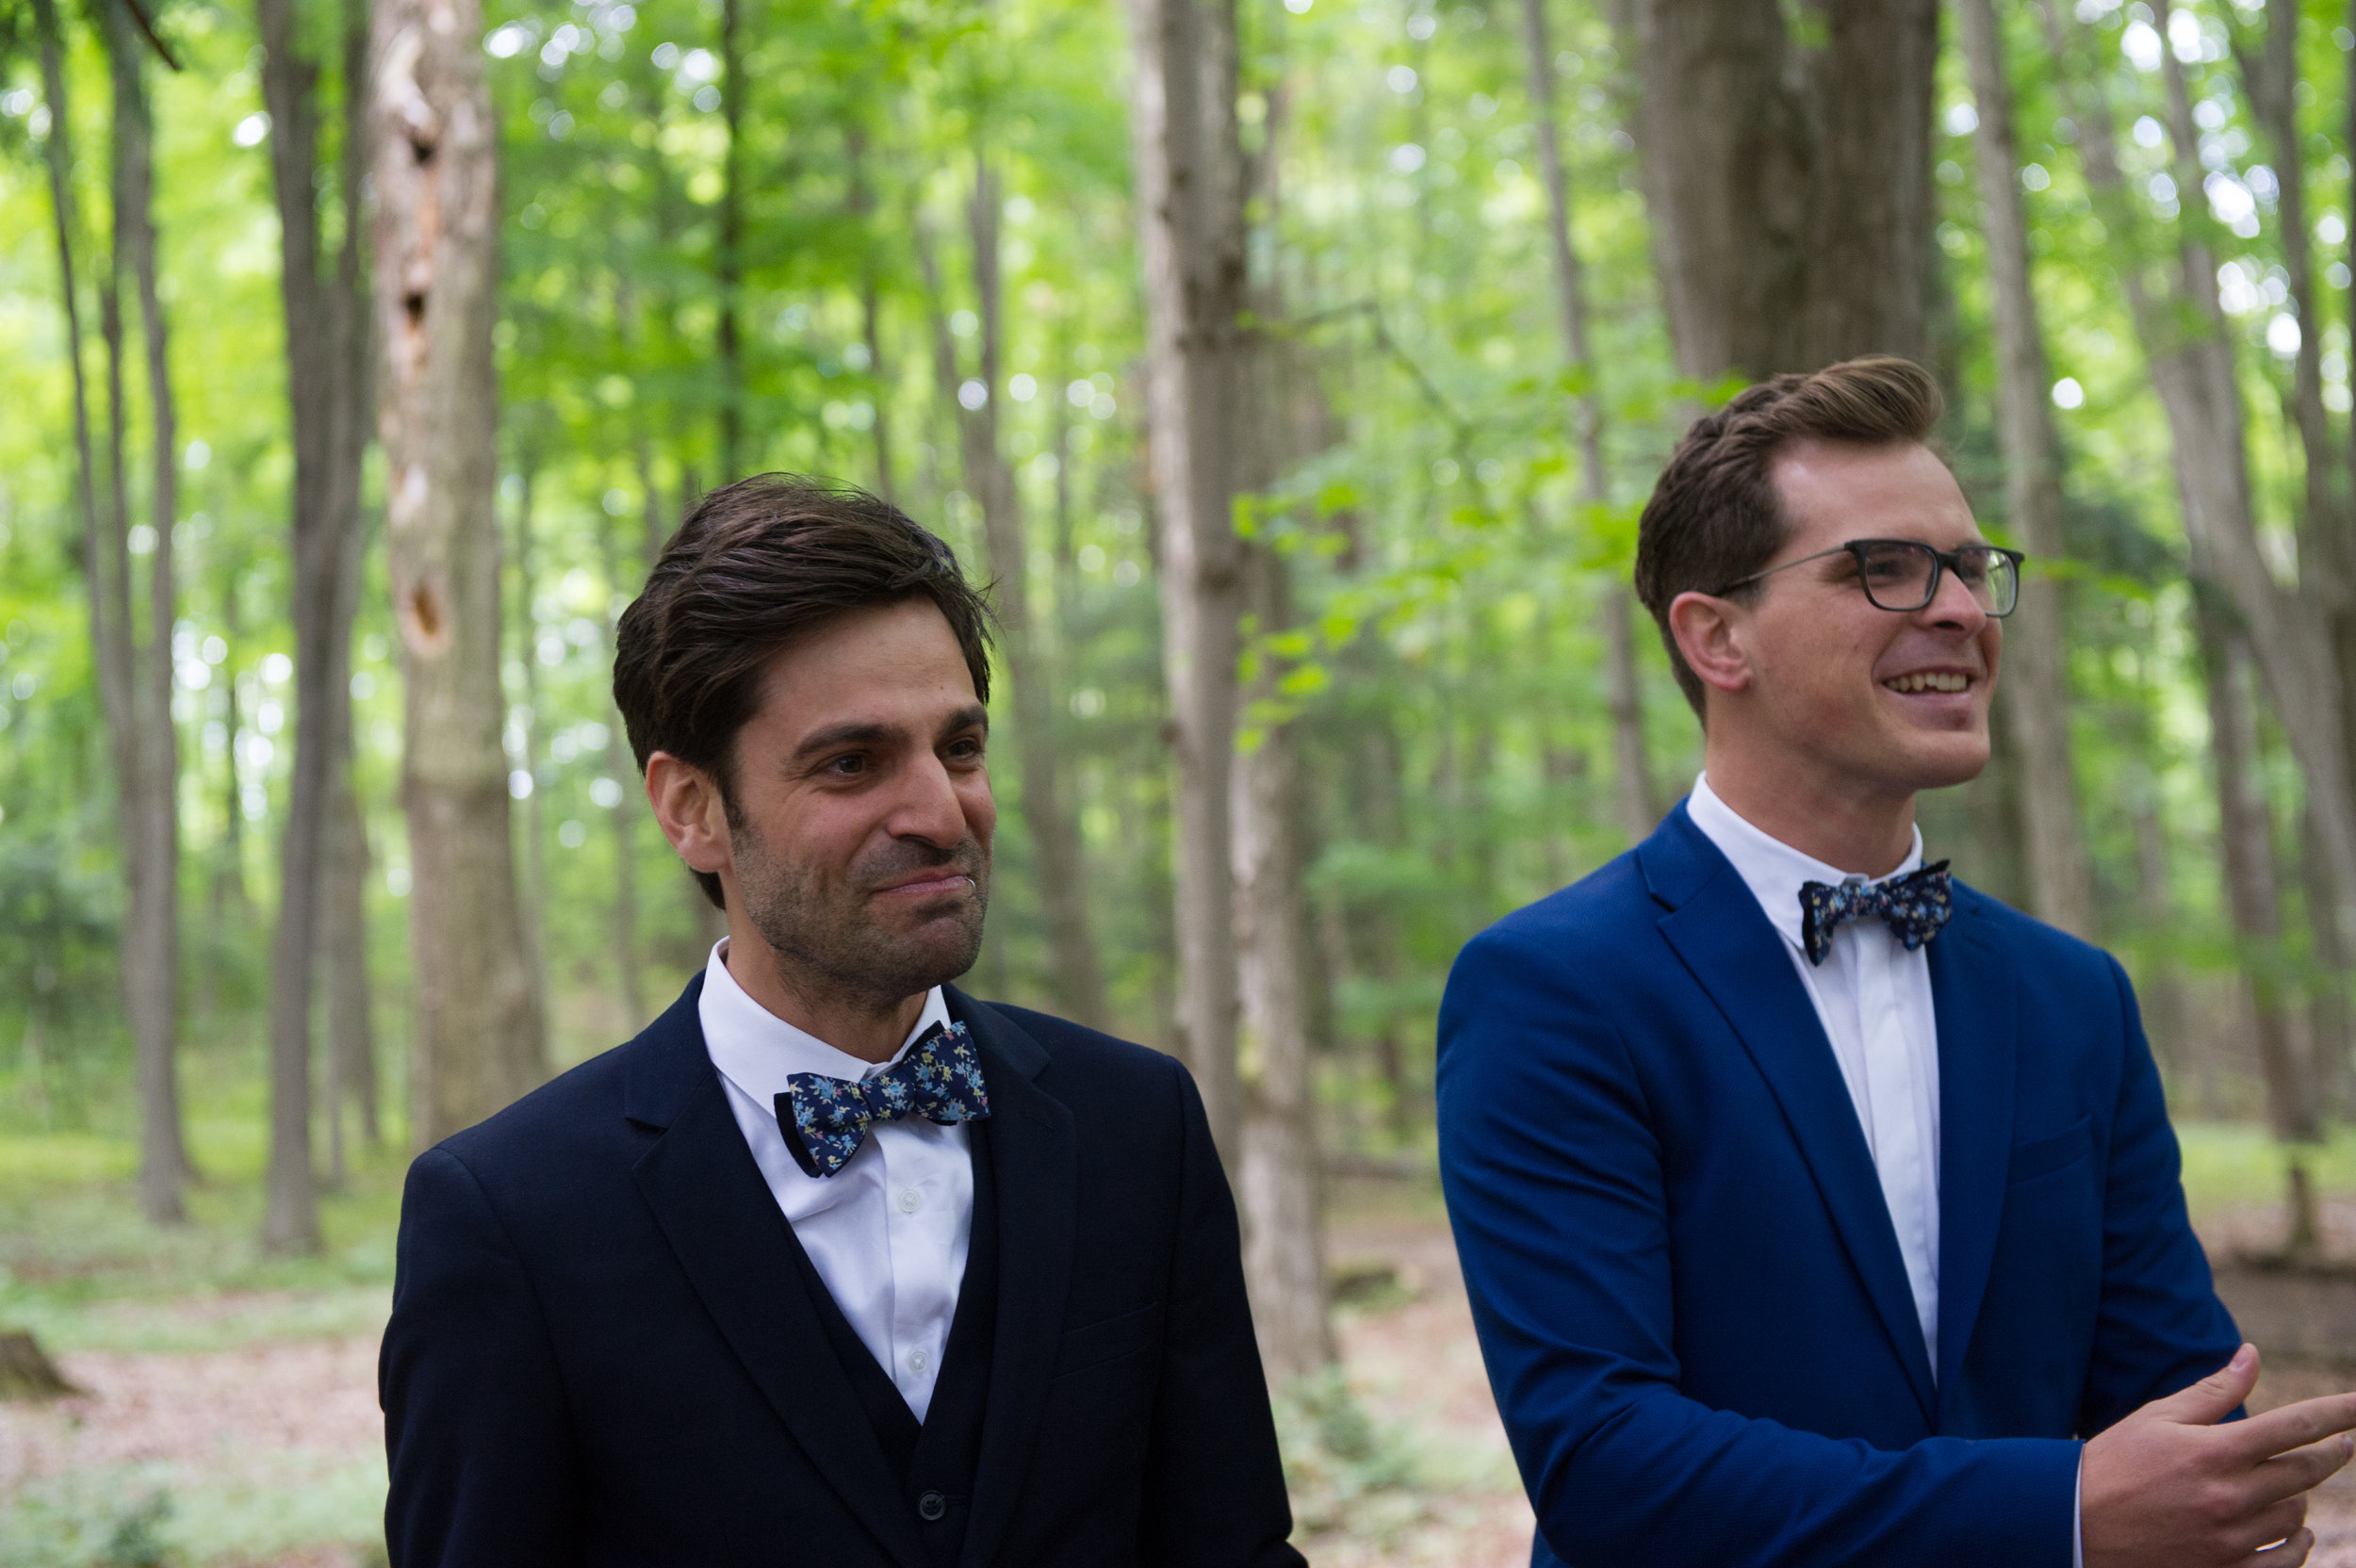 The groom and best man watch the bride and her father walk down the aisle.  // Wedding photos by Karmel Kreative // Plant Based Bride